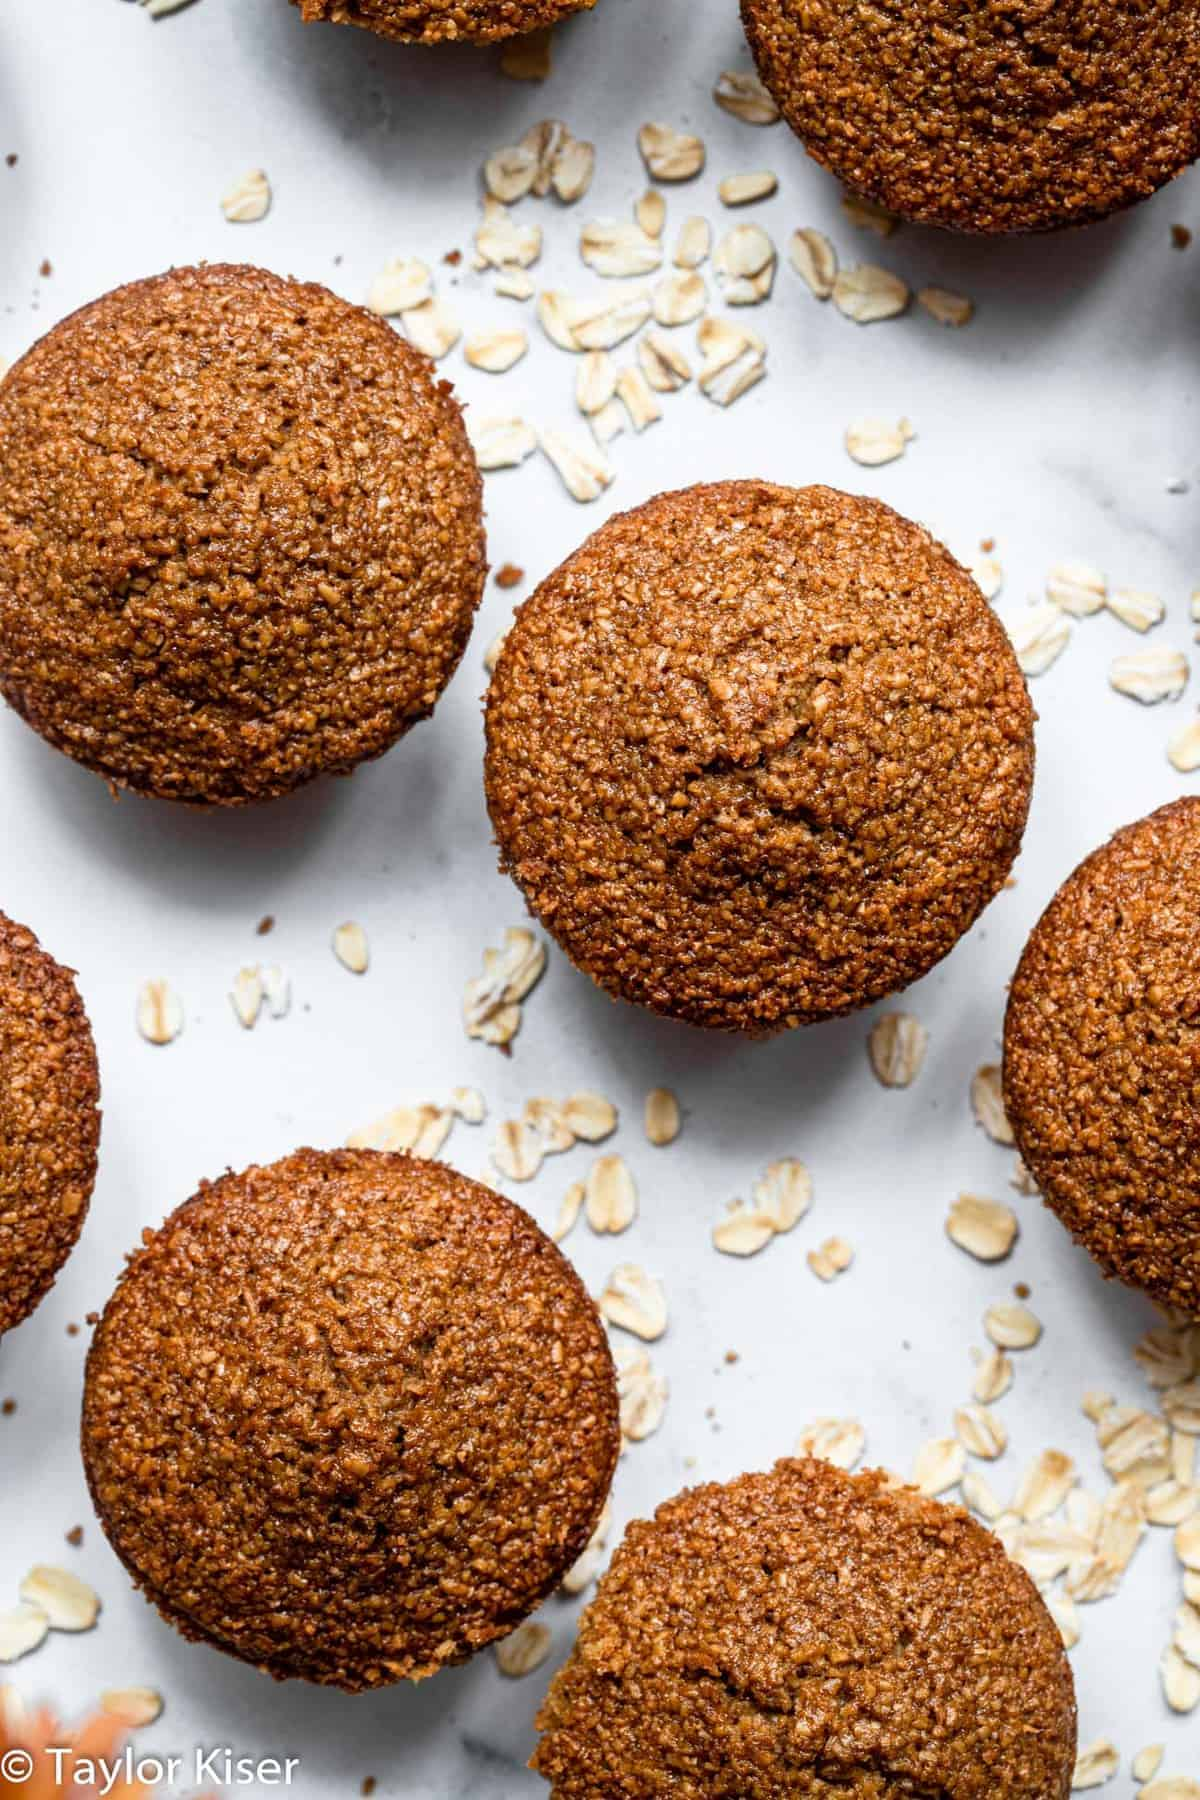 the tops of healthy oat bran muffins on a table with oats around them